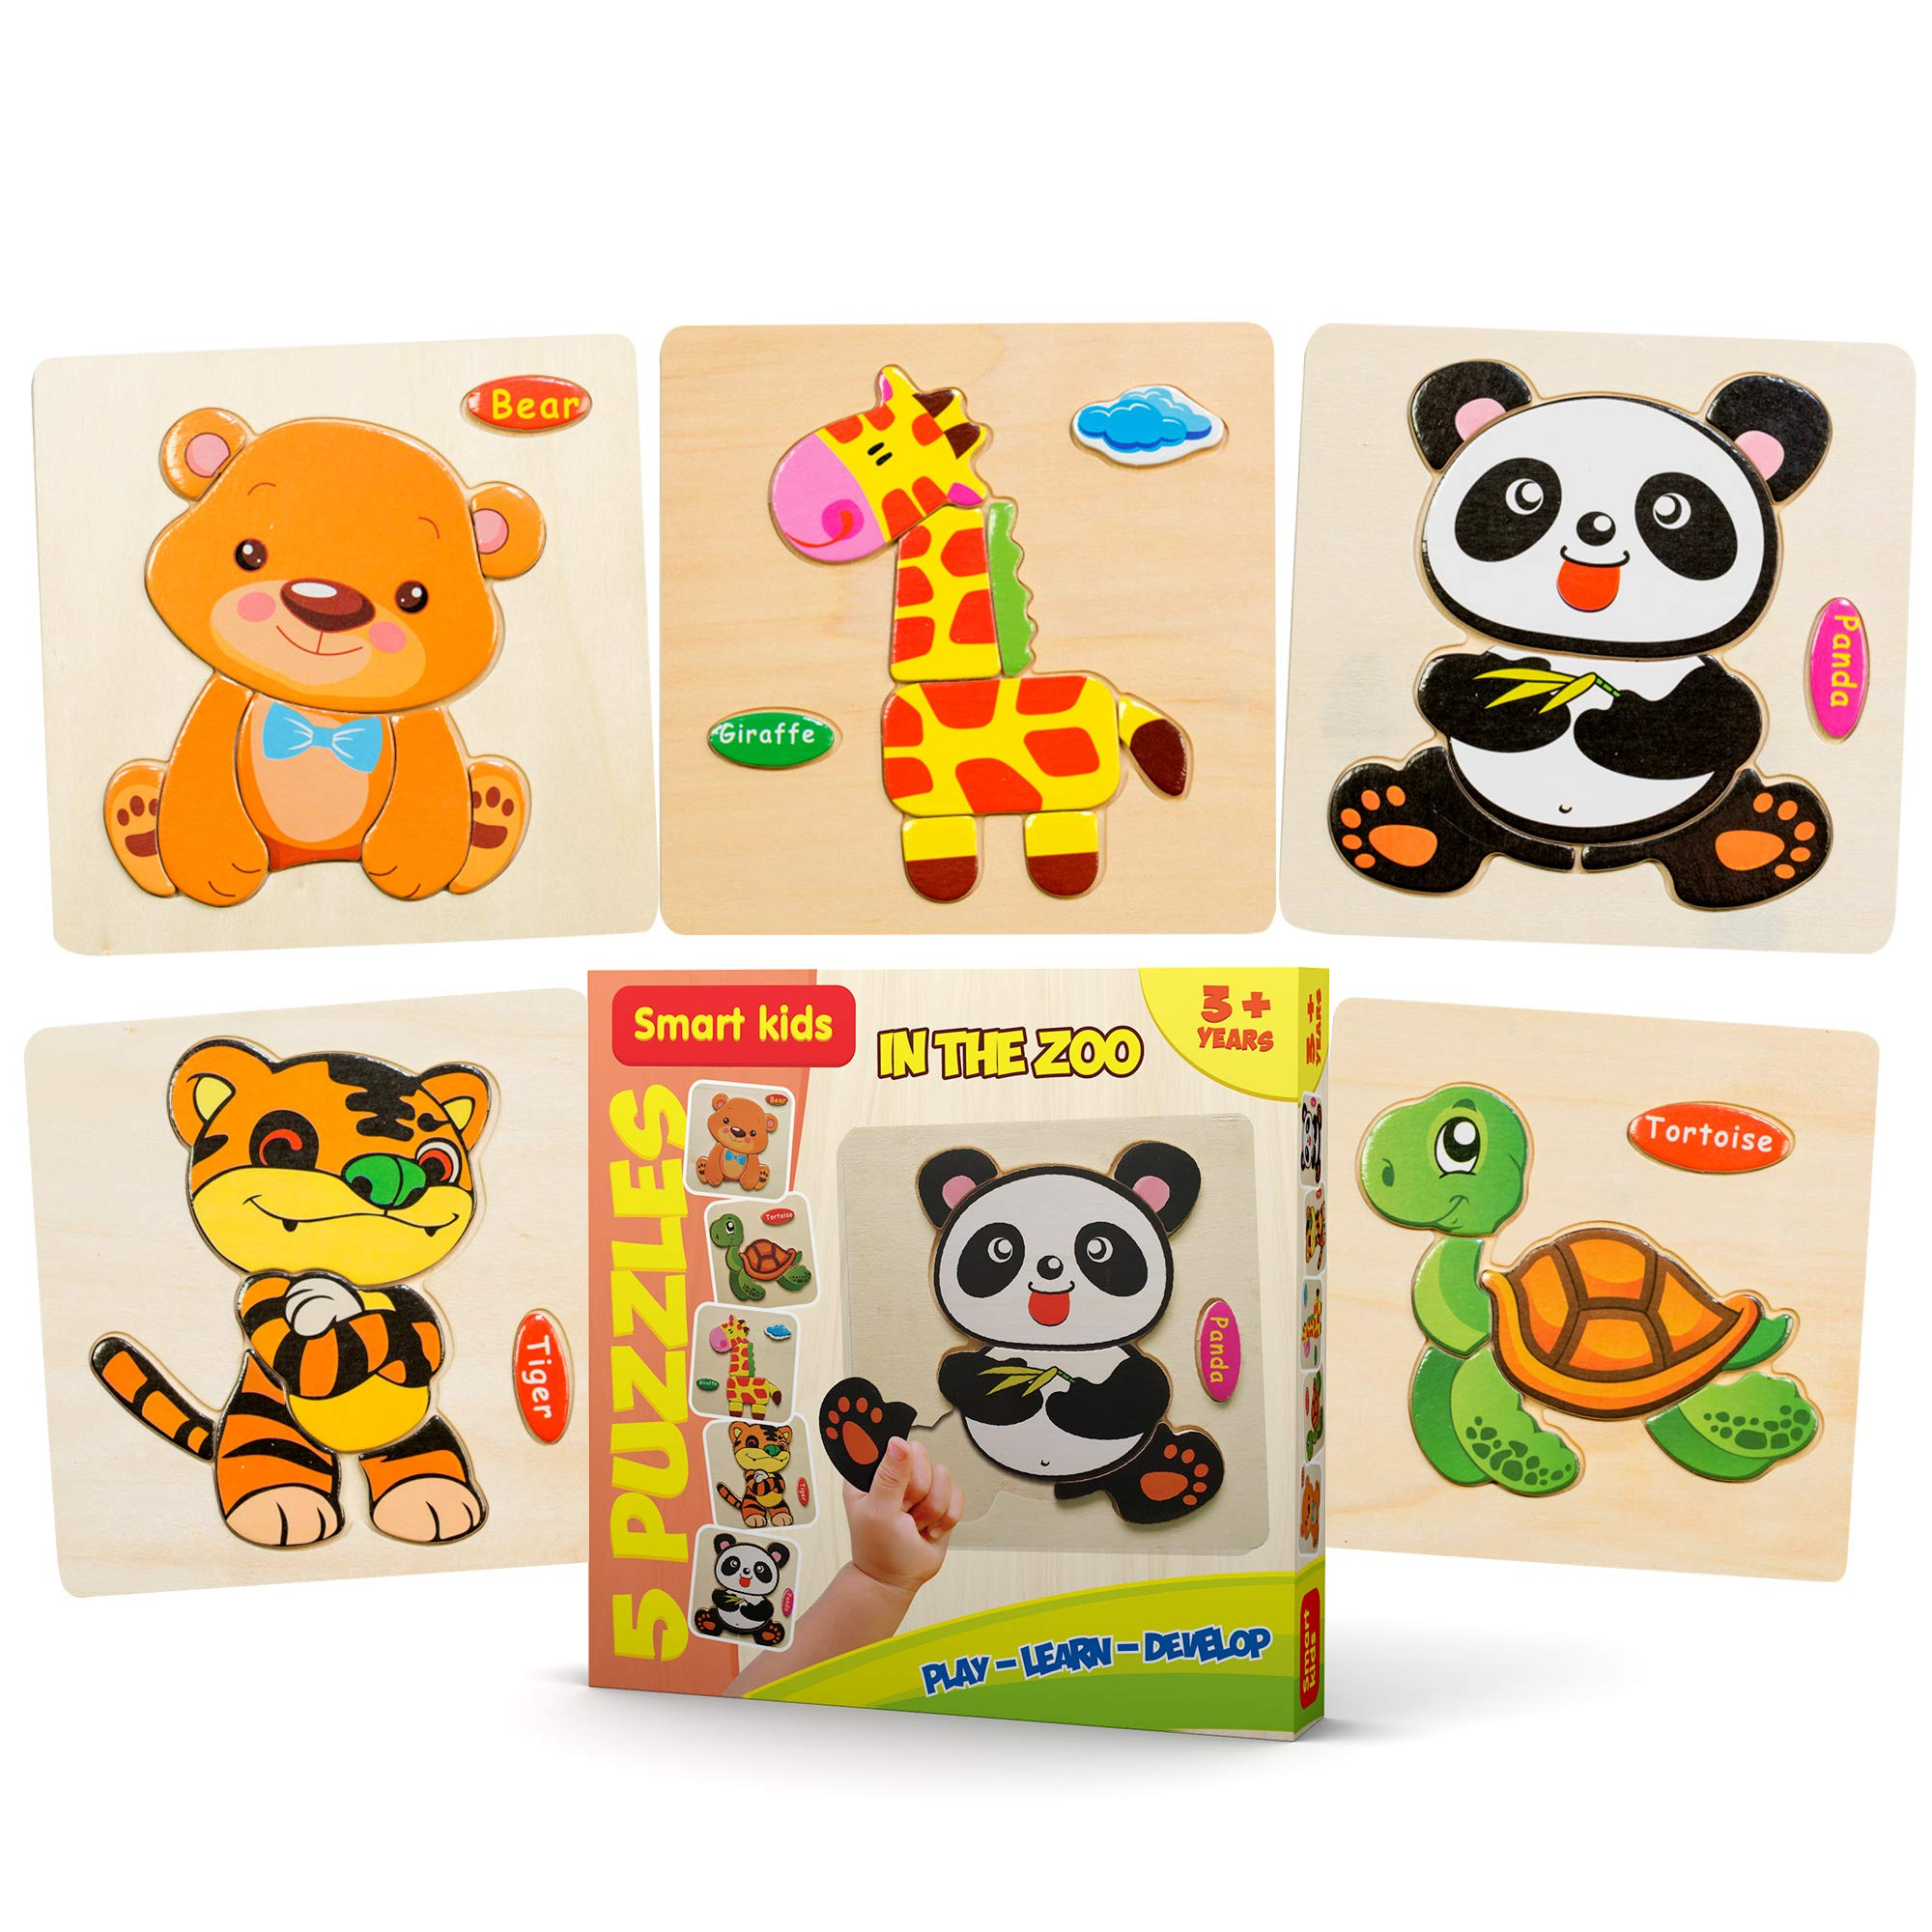 Wooden Puzzles for Toddlers - New Set of 5 Kids Puzzles - Baby Puzzles Age 3+ Toddlers Puzzles for Boys and Girls - in The Zoo Set - Tiger - Panda - Bear - Giraffe - Tortoise - 2018 New 37 pcs.